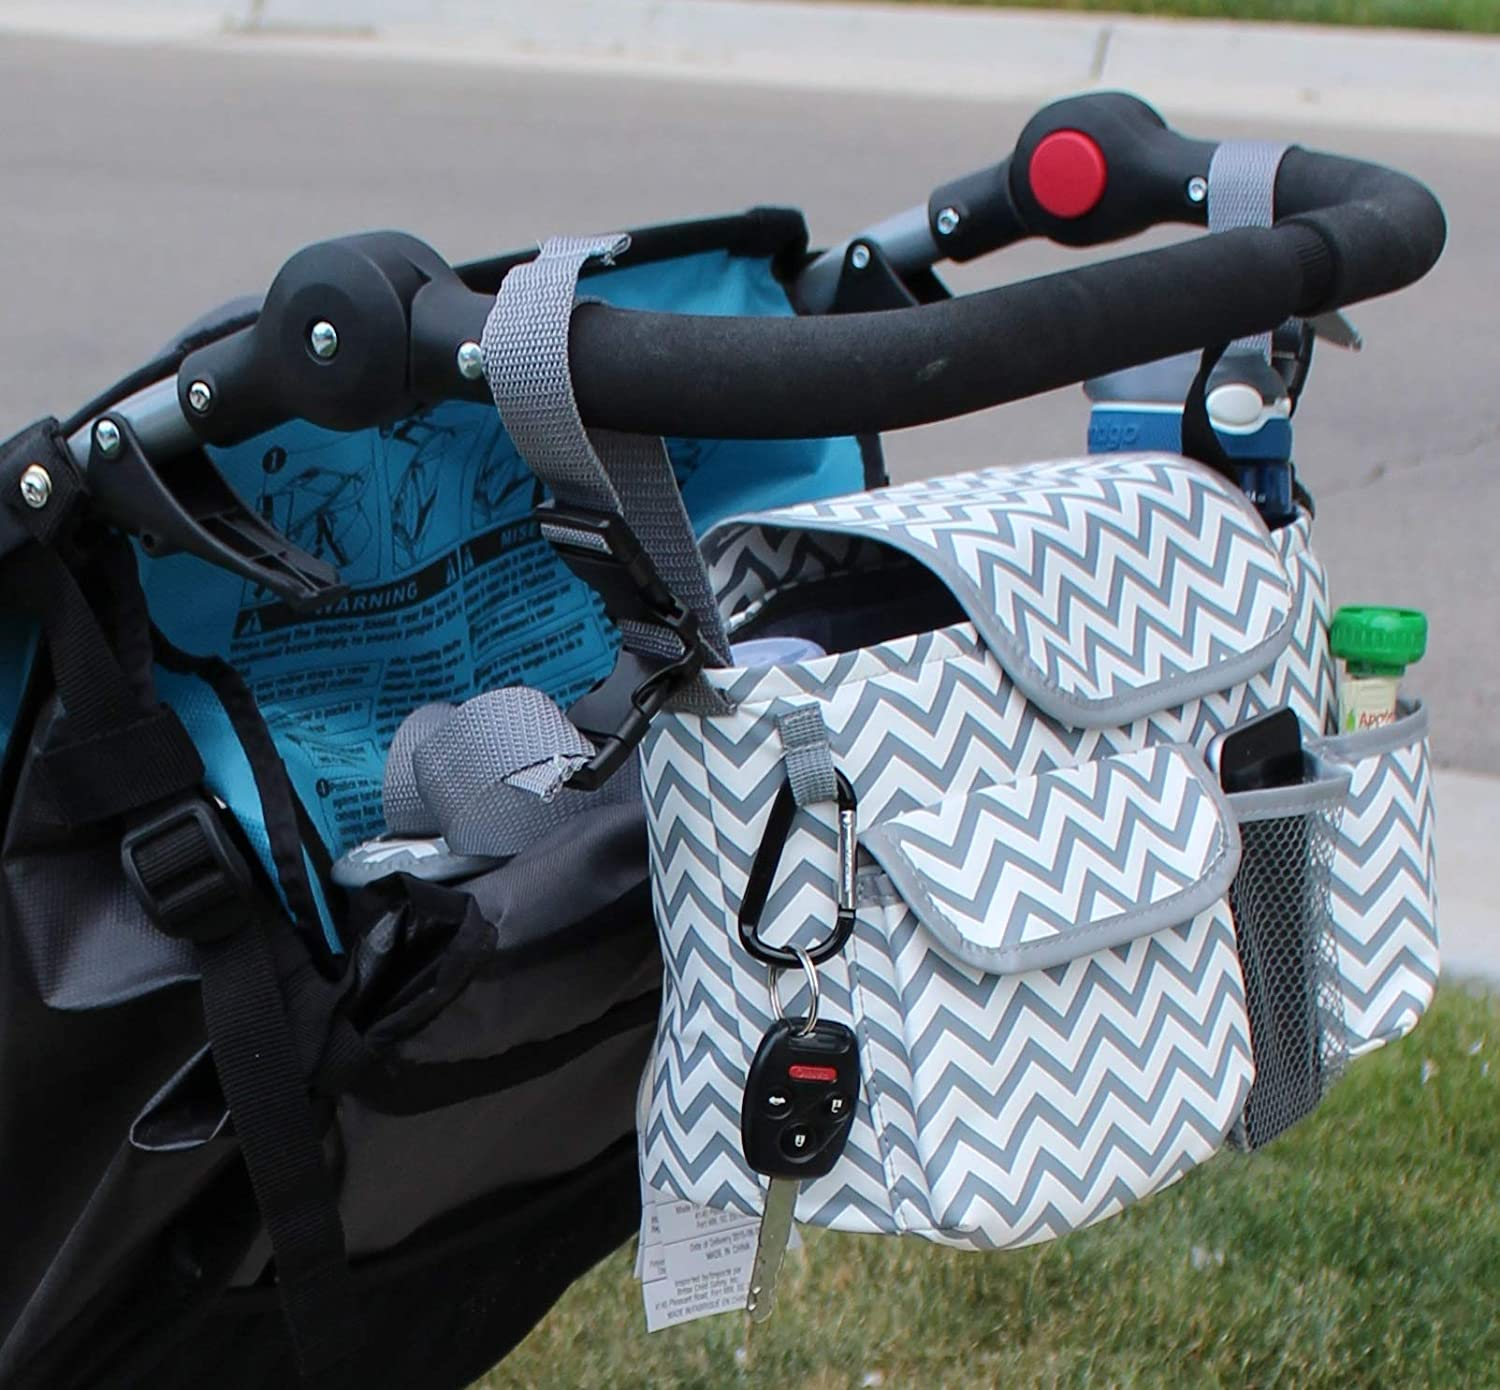 Universal Stroller Organizer with Cup Holders | Mini Diaper Bag | Easily Store Wallets, Keys, Bottles, Diapers, Wipes & Toys. | Premium Chevron Stroller Caddy by Travel in Sanity TIS#531